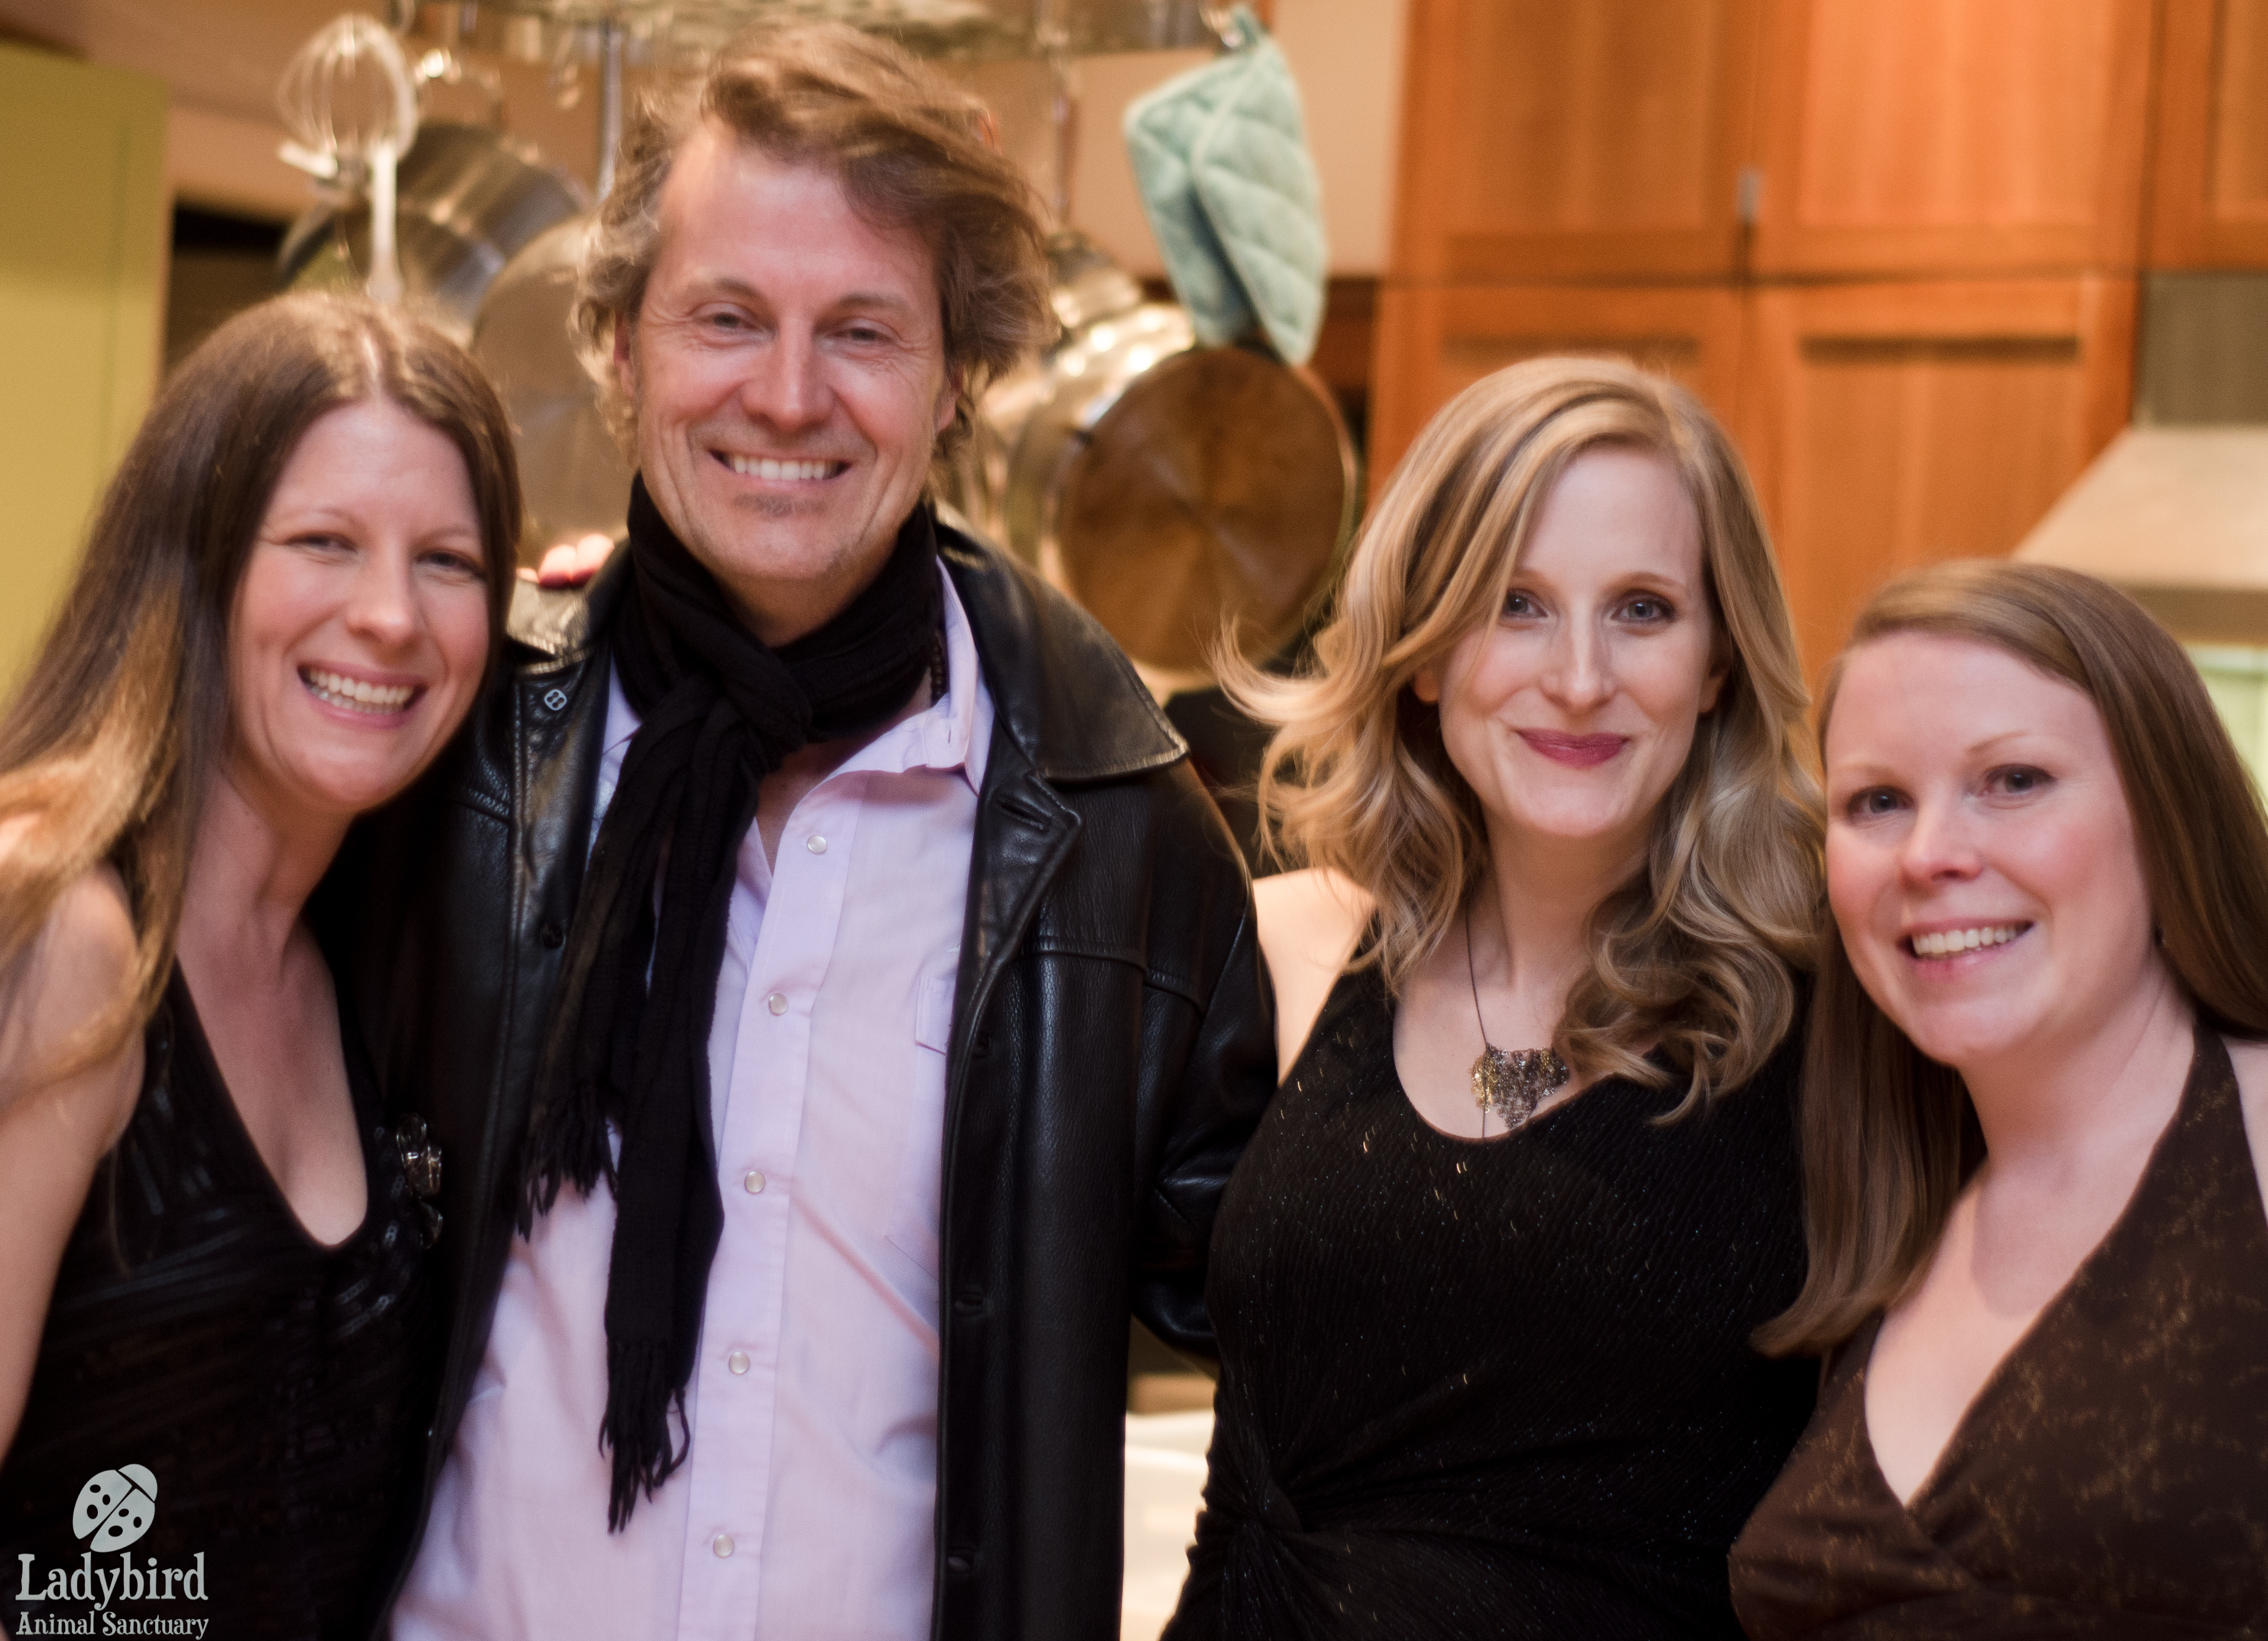 Ladybird Soiree 2014 with Jim Cuddy